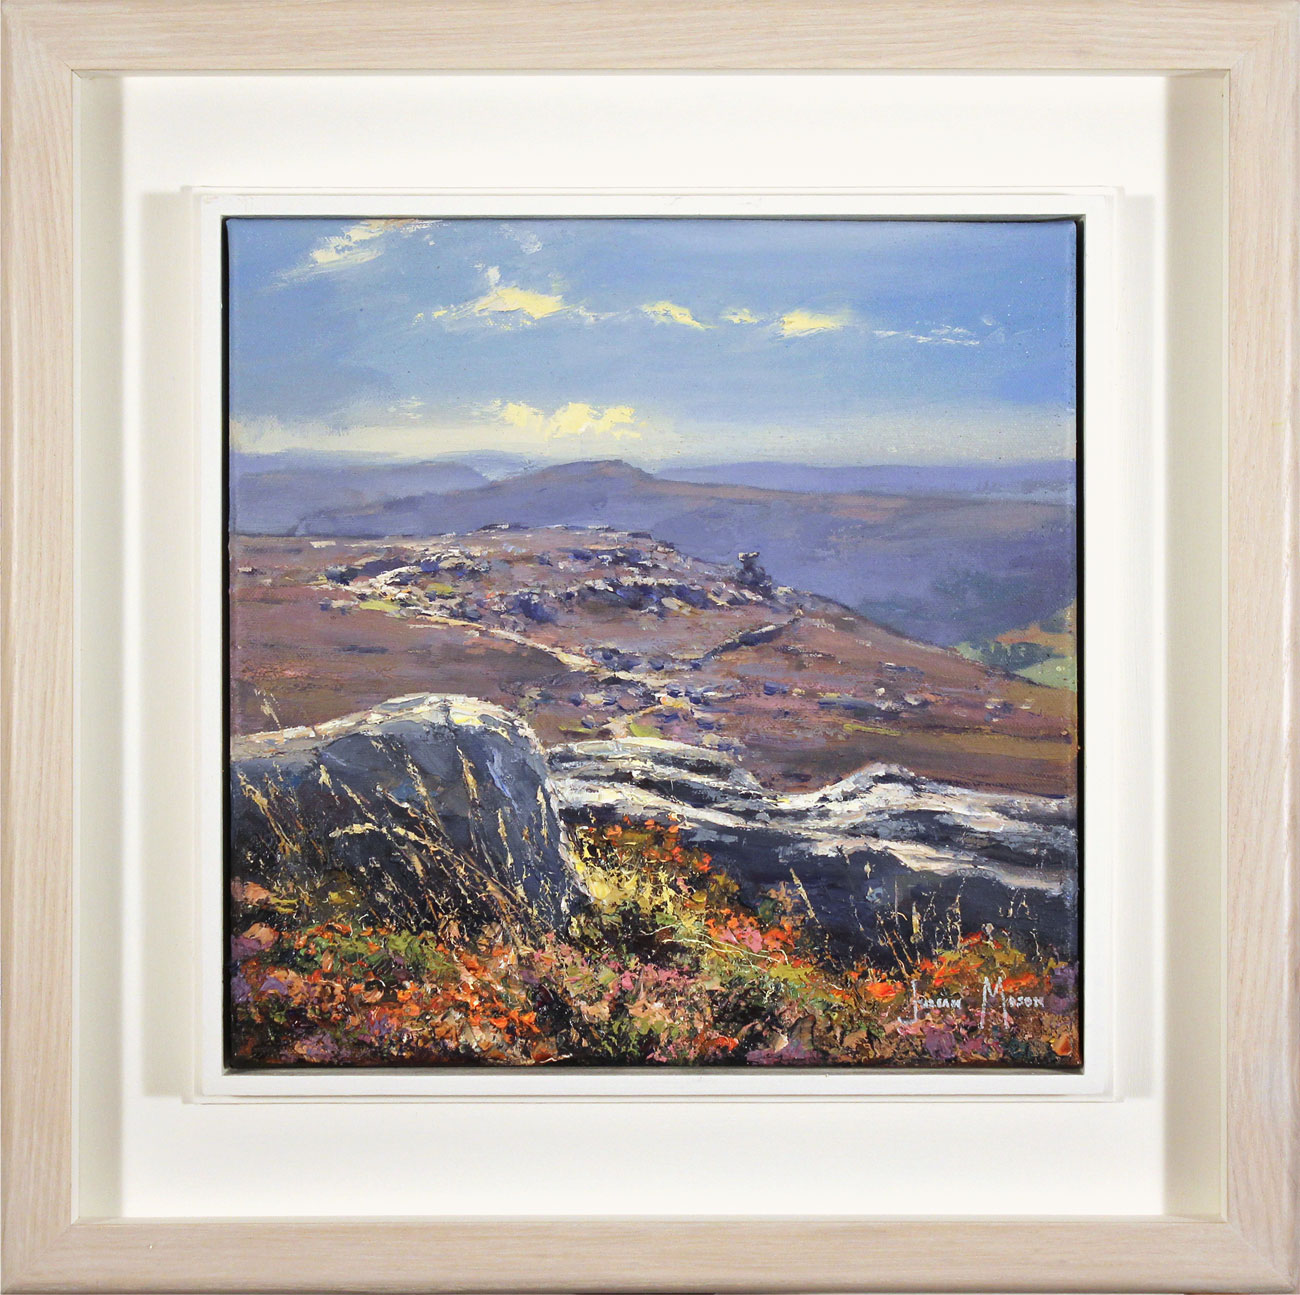 Julian Mason, Original oil painting on canvas, From Dovestone Tor, click to enlarge